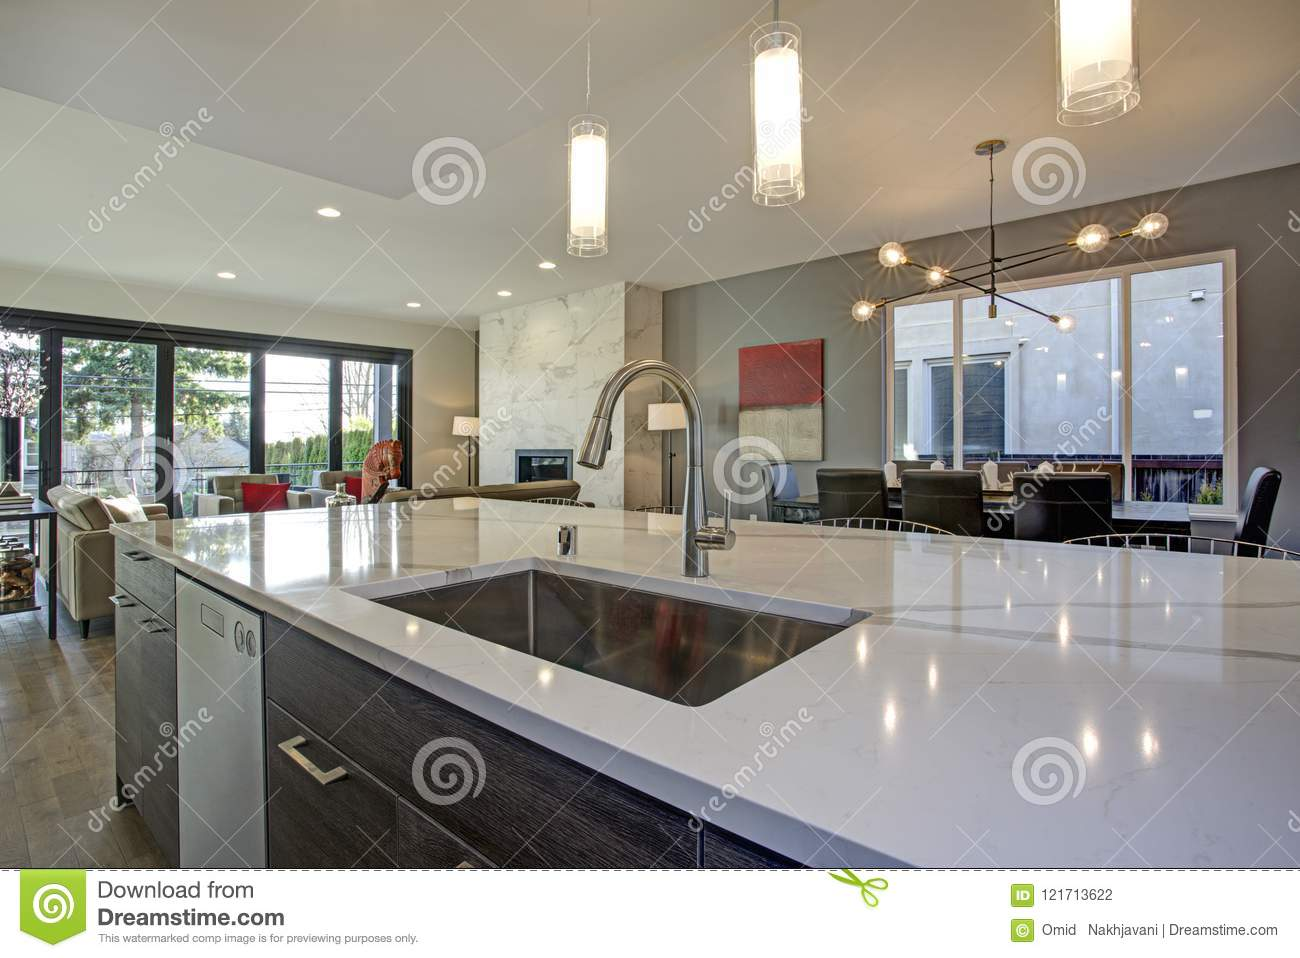 . White And Gray Kitchen Room Interior With Open Floor Plan  Stock